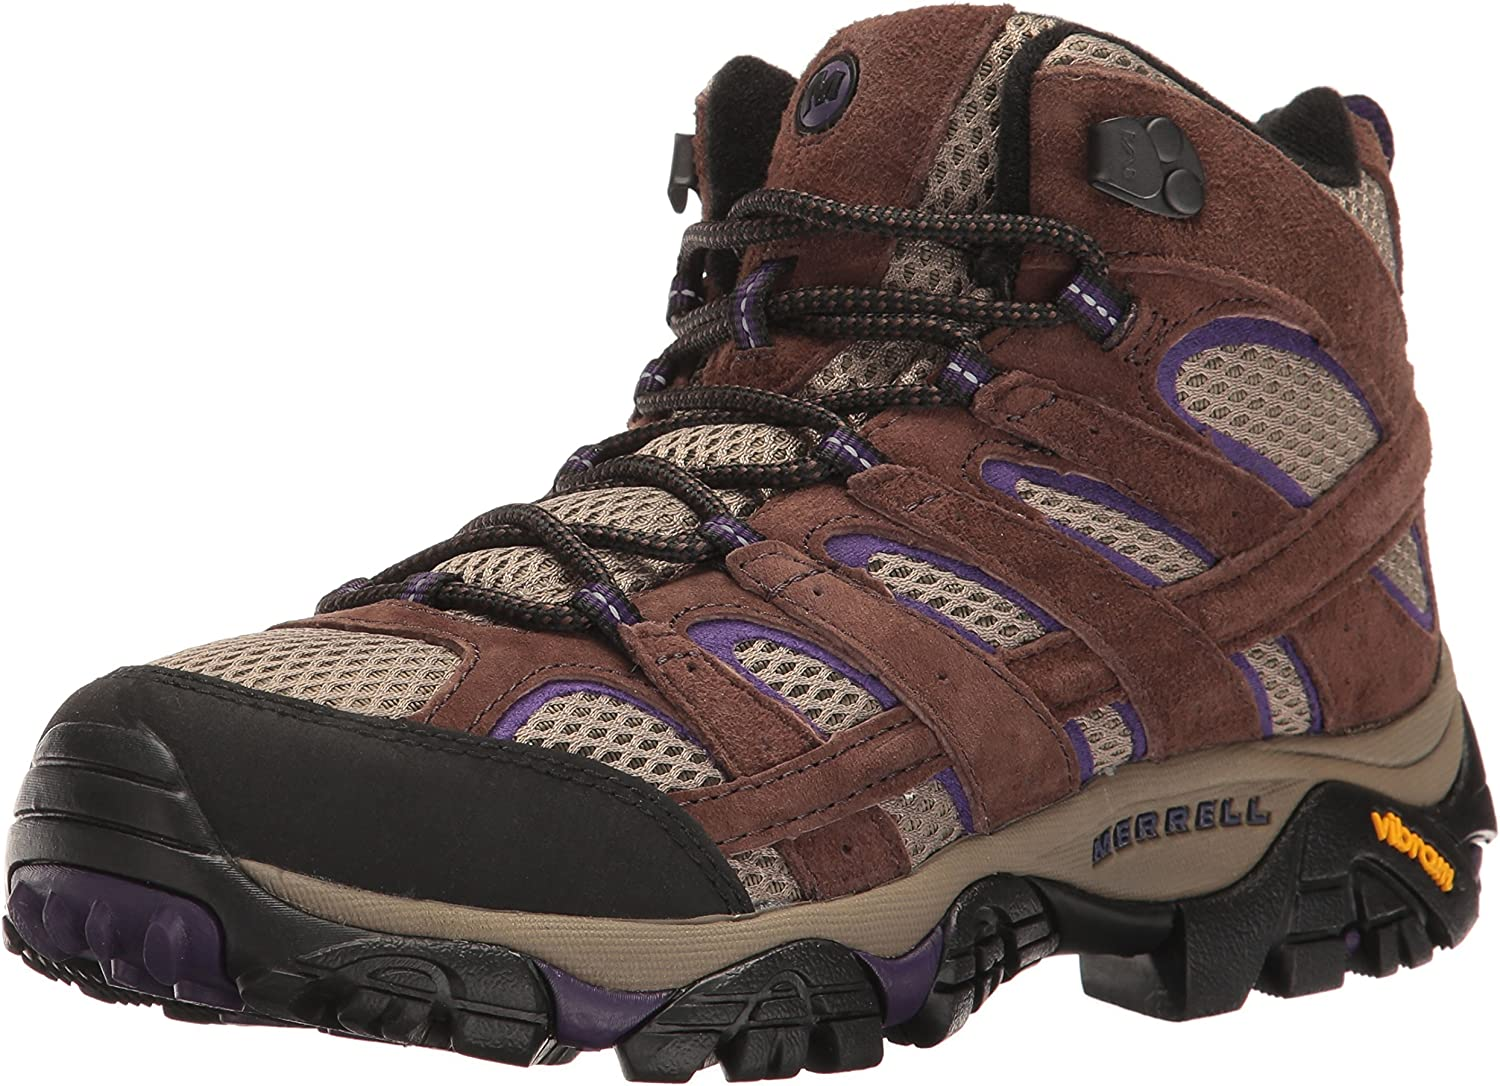 Merrell Women's Sale Moab 2 Vent Hiking Boot Direct sale of manufacturer Mid